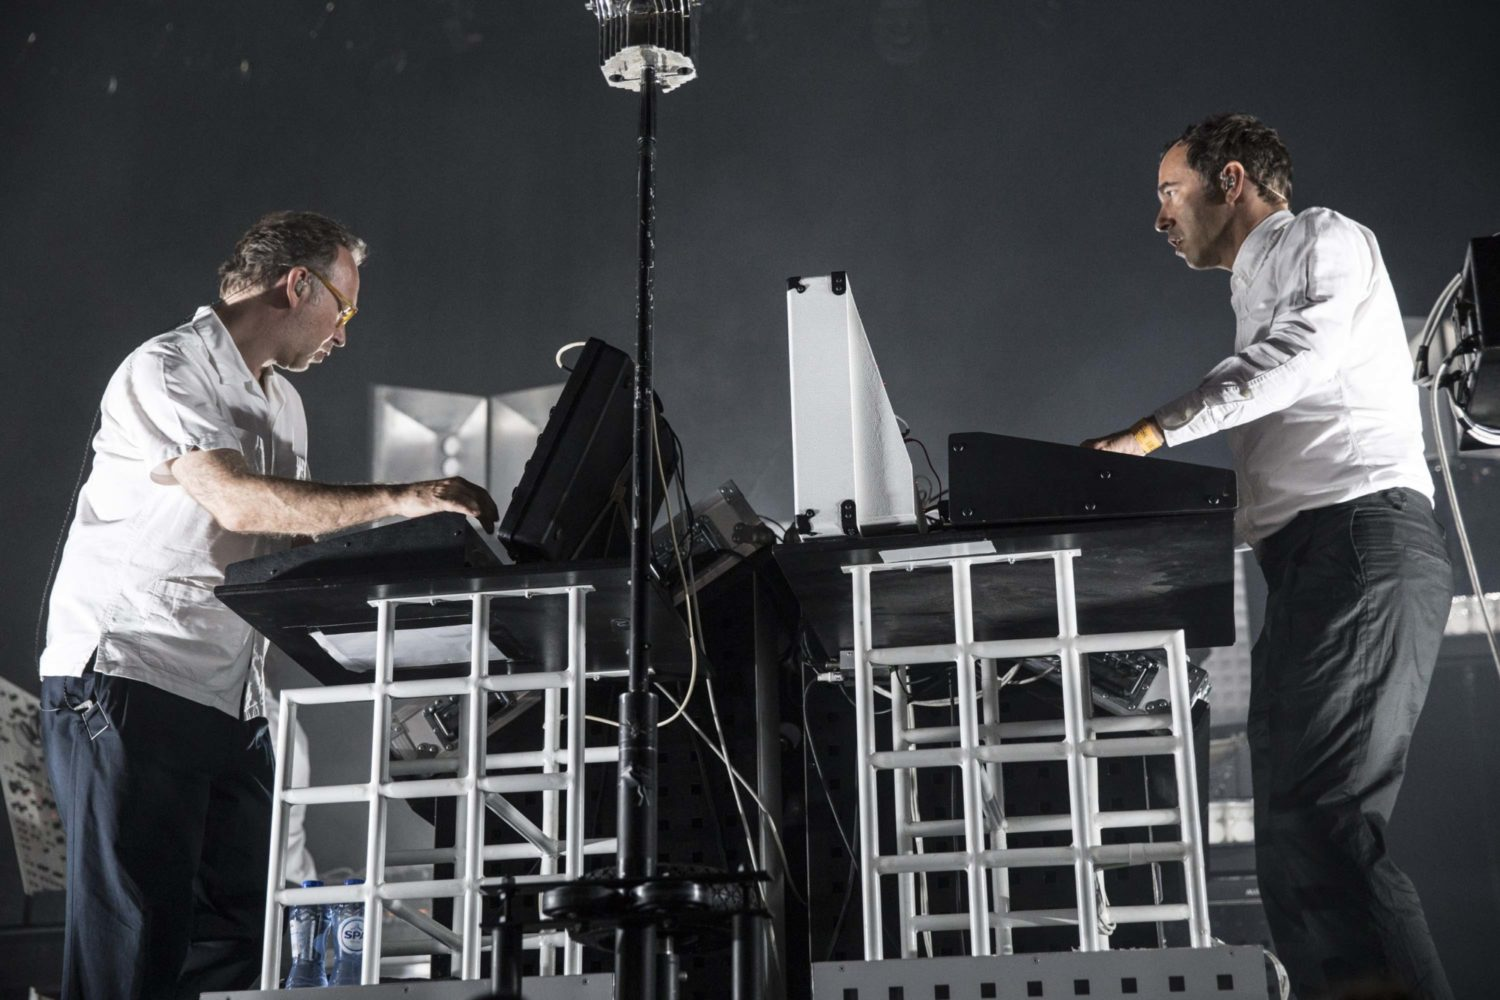 Soulwax have announced new UK dates